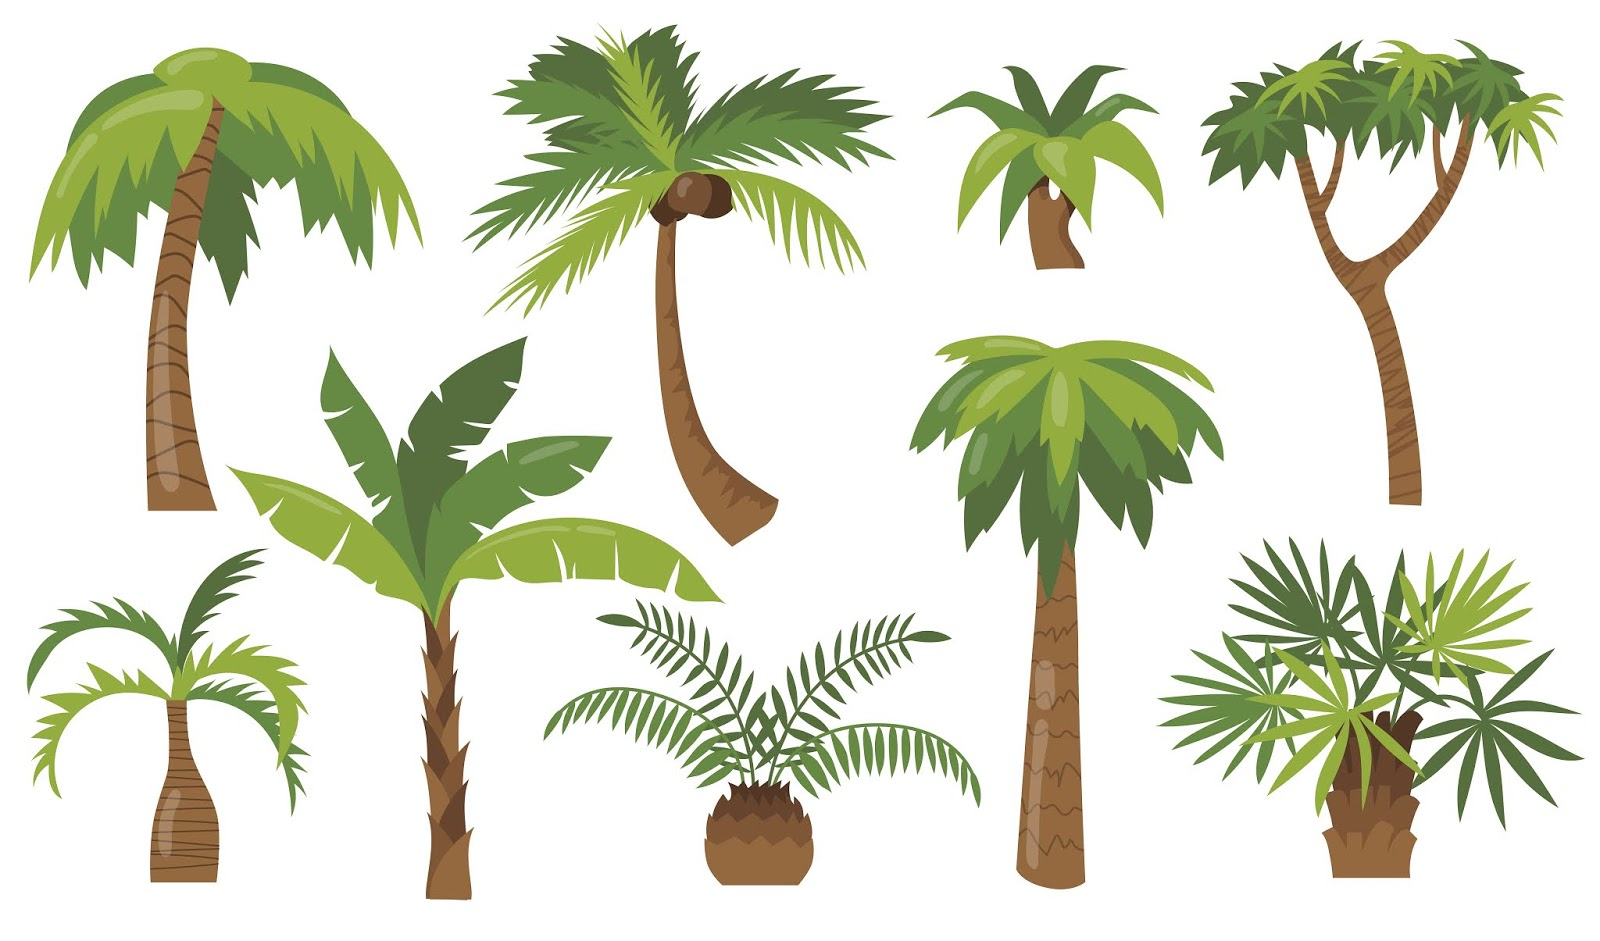 Various Cartoon Palm Trees Flat Icon Set Free Download Vector CDR, AI, EPS and PNG Formats